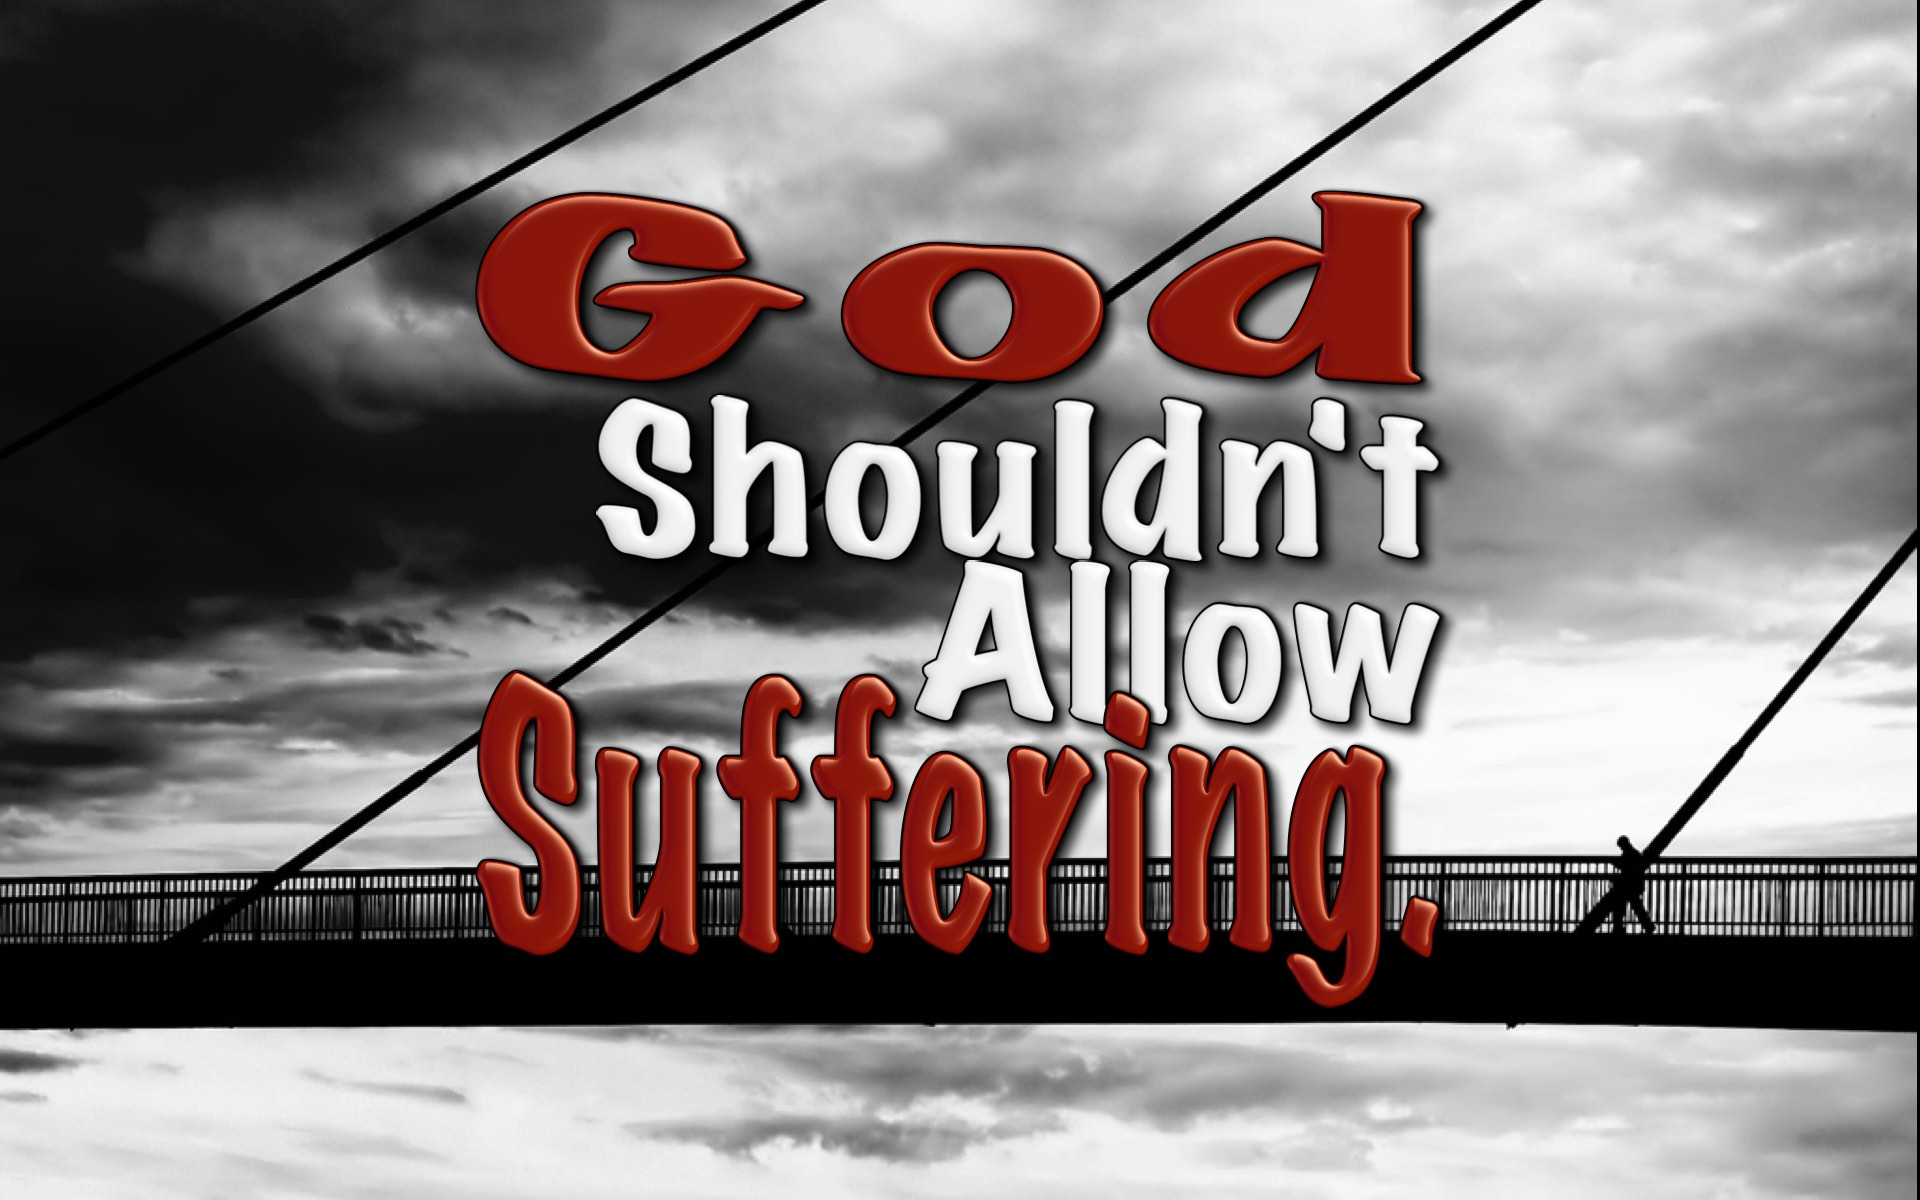 God Should Not Allow Suffering